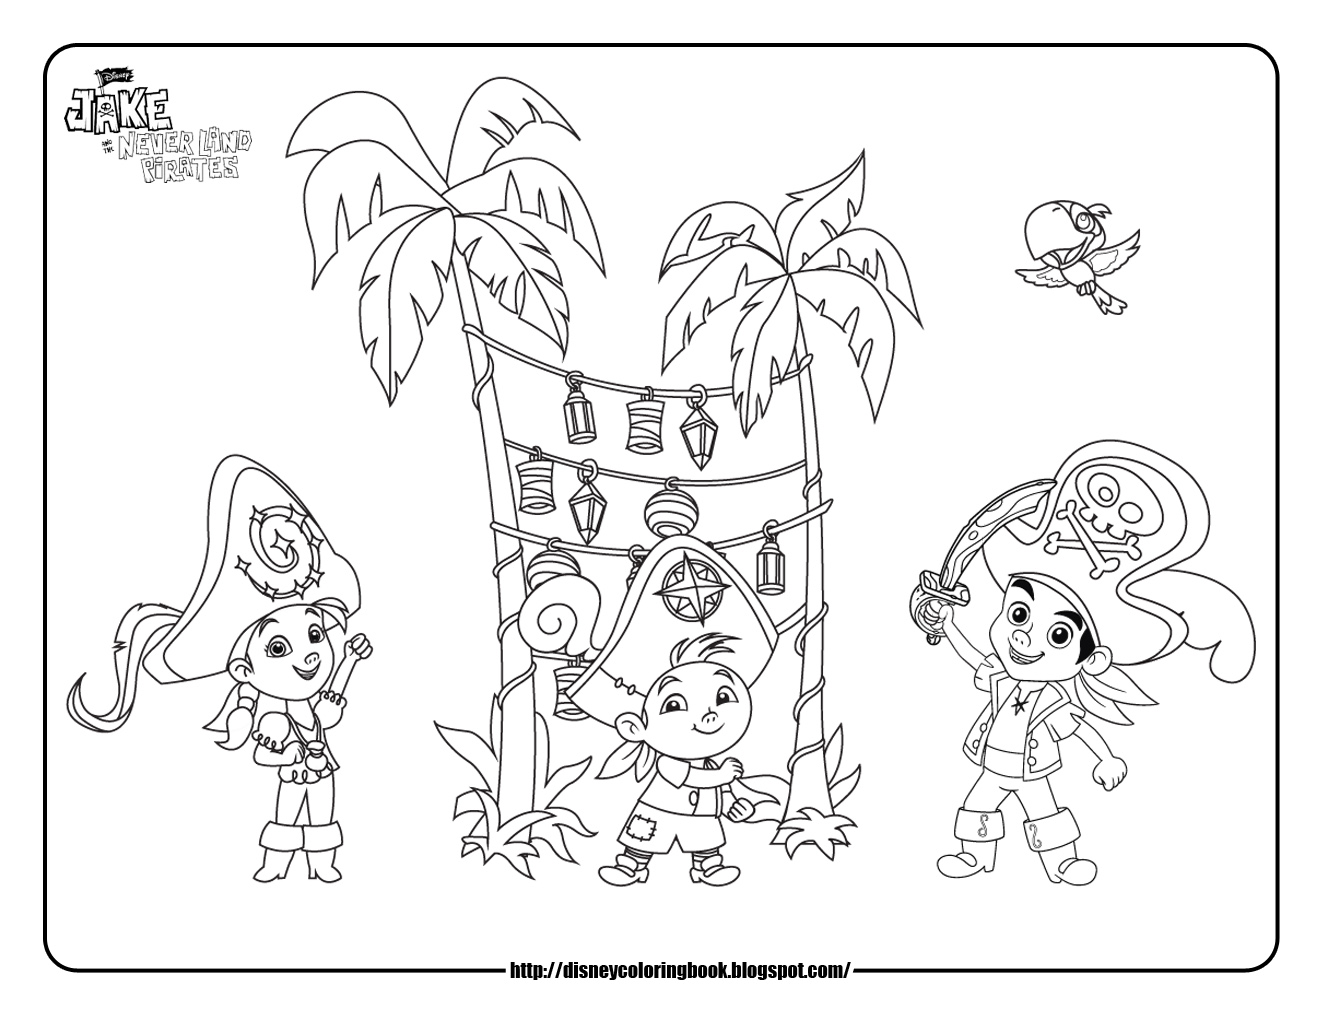 jake and the neverland pirates 3 free disney coloring sheets